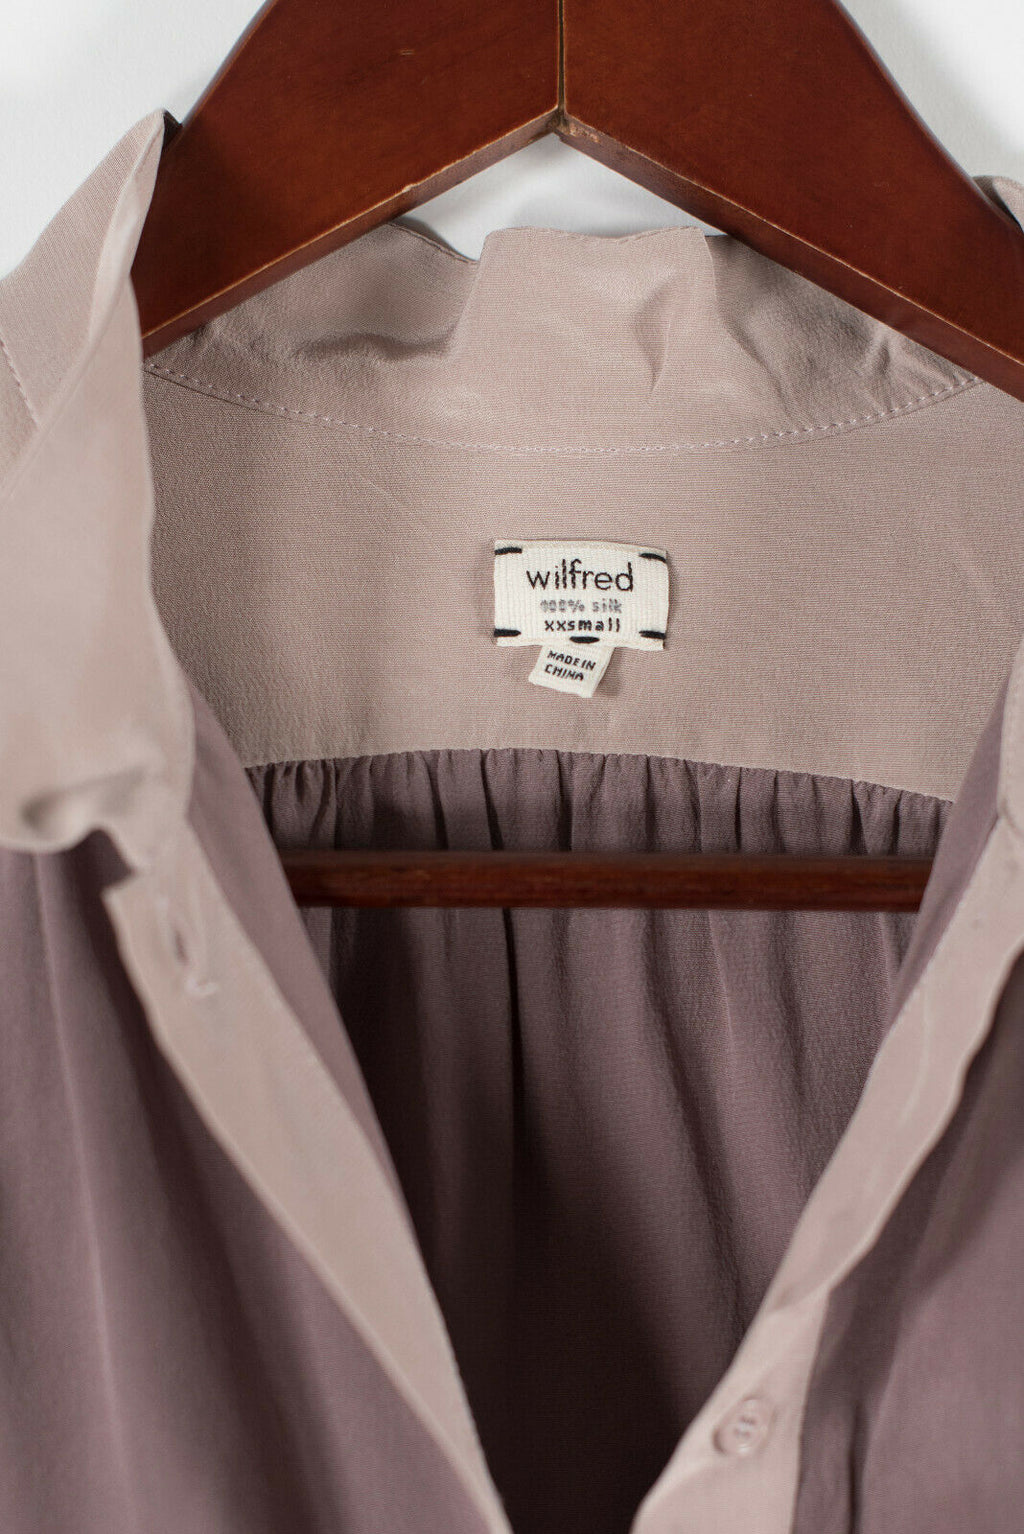 Aritzia Wilfred Womens XXS Purple Pink Shirt Silk Tunic Top 3/4 Sleeve Blouse